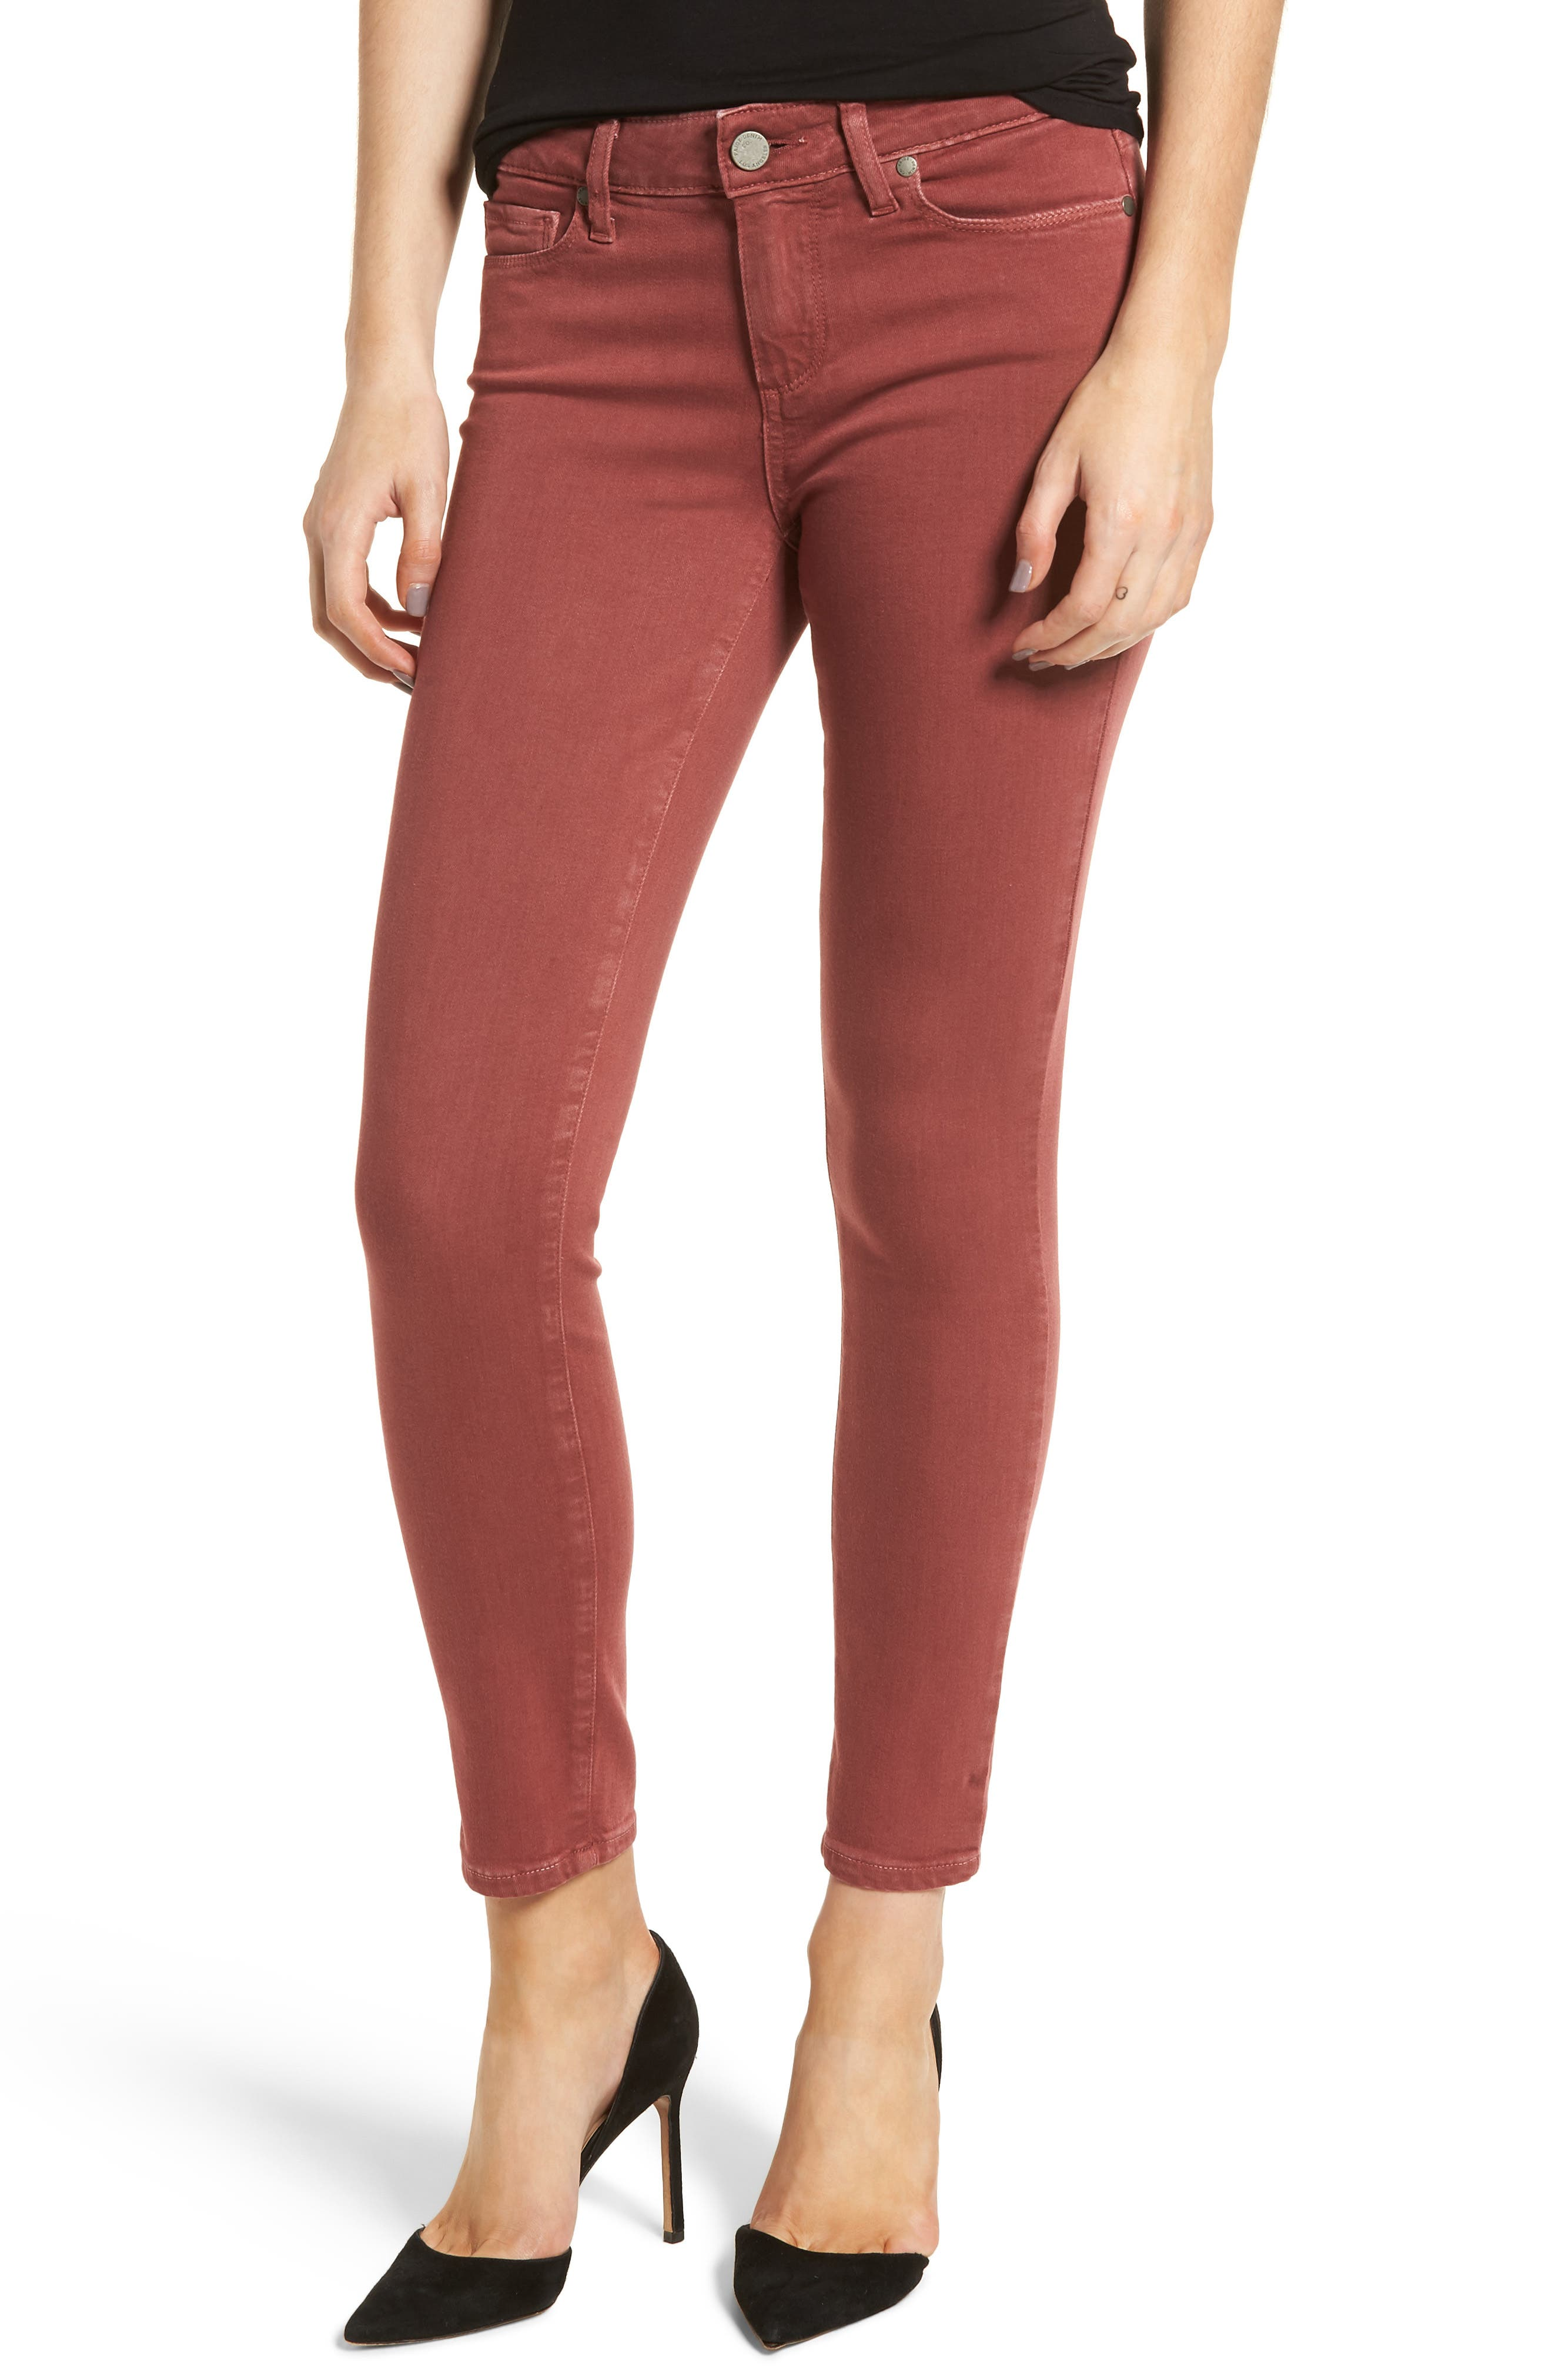 Alternate Image 1 Selected - PAIGE Verdugo Ankle Ultra Skinny Jeans (Vintage Dark Rose)